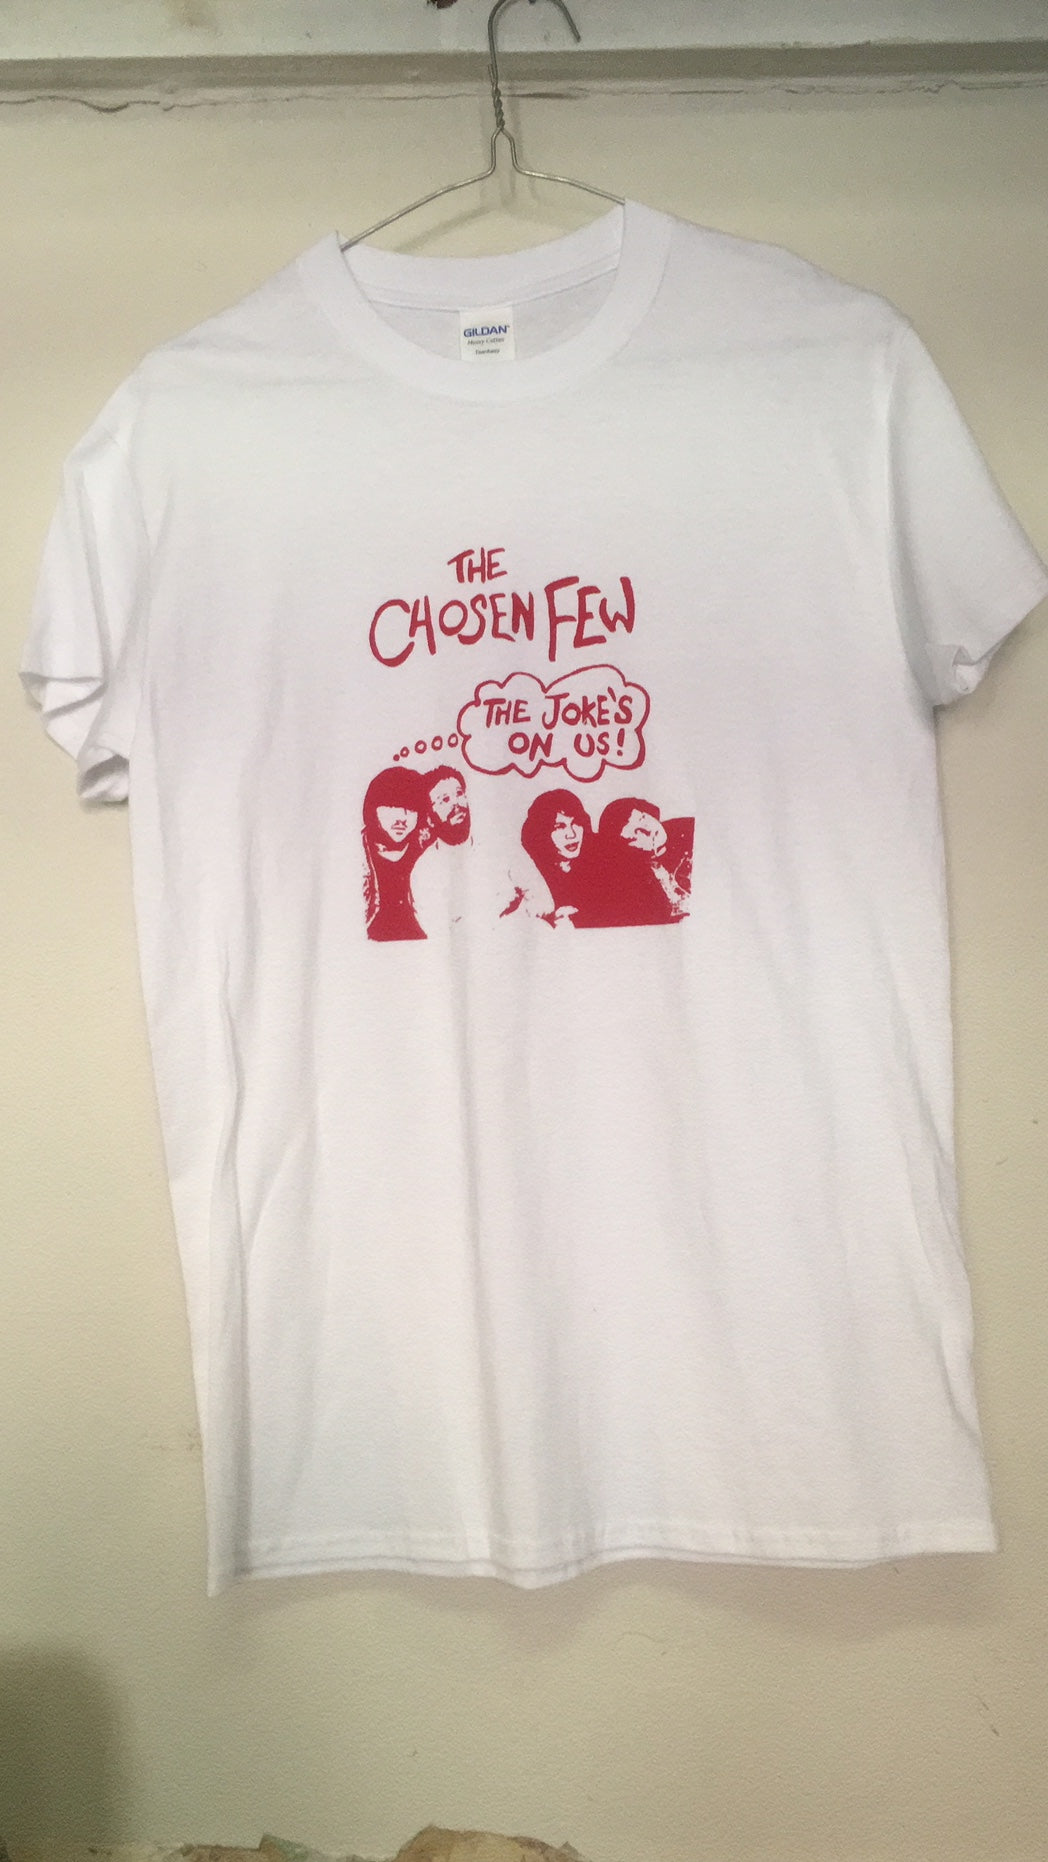 CHOSEN FEW - SHIRT